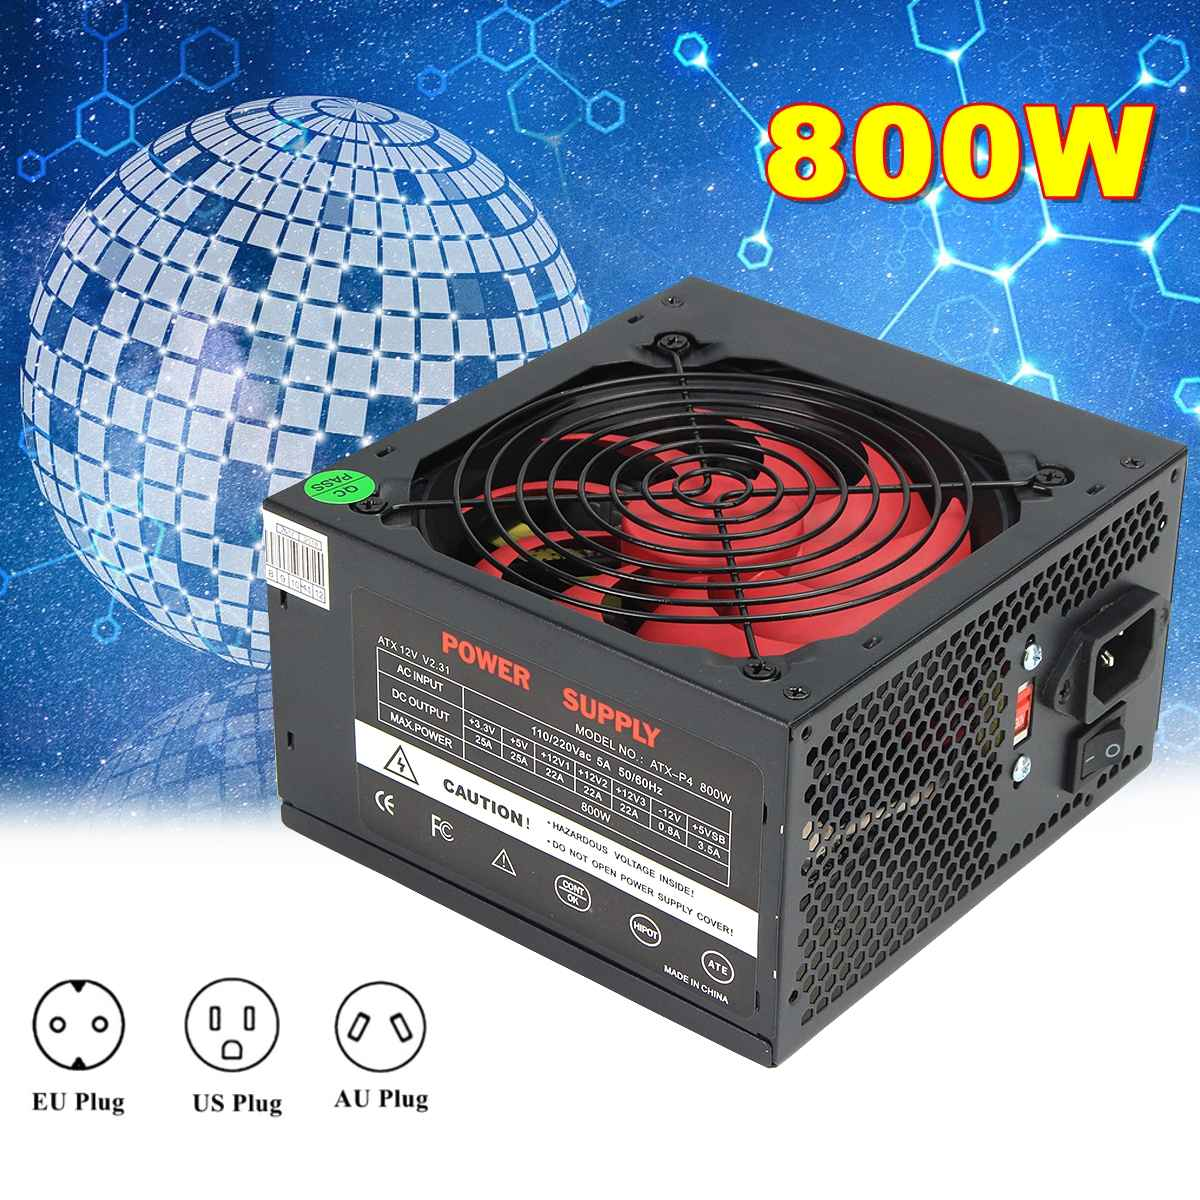 Black 800W <font><b>800</b></font> <font><b>Watt</b></font> <font><b>Power</b></font> <font><b>Supply</b></font> 120mm Fan 24 Pin PCI SATA ATX 12V Molex Connect Computer <font><b>Power</b></font> <font><b>Supply</b></font> 80+Gold image